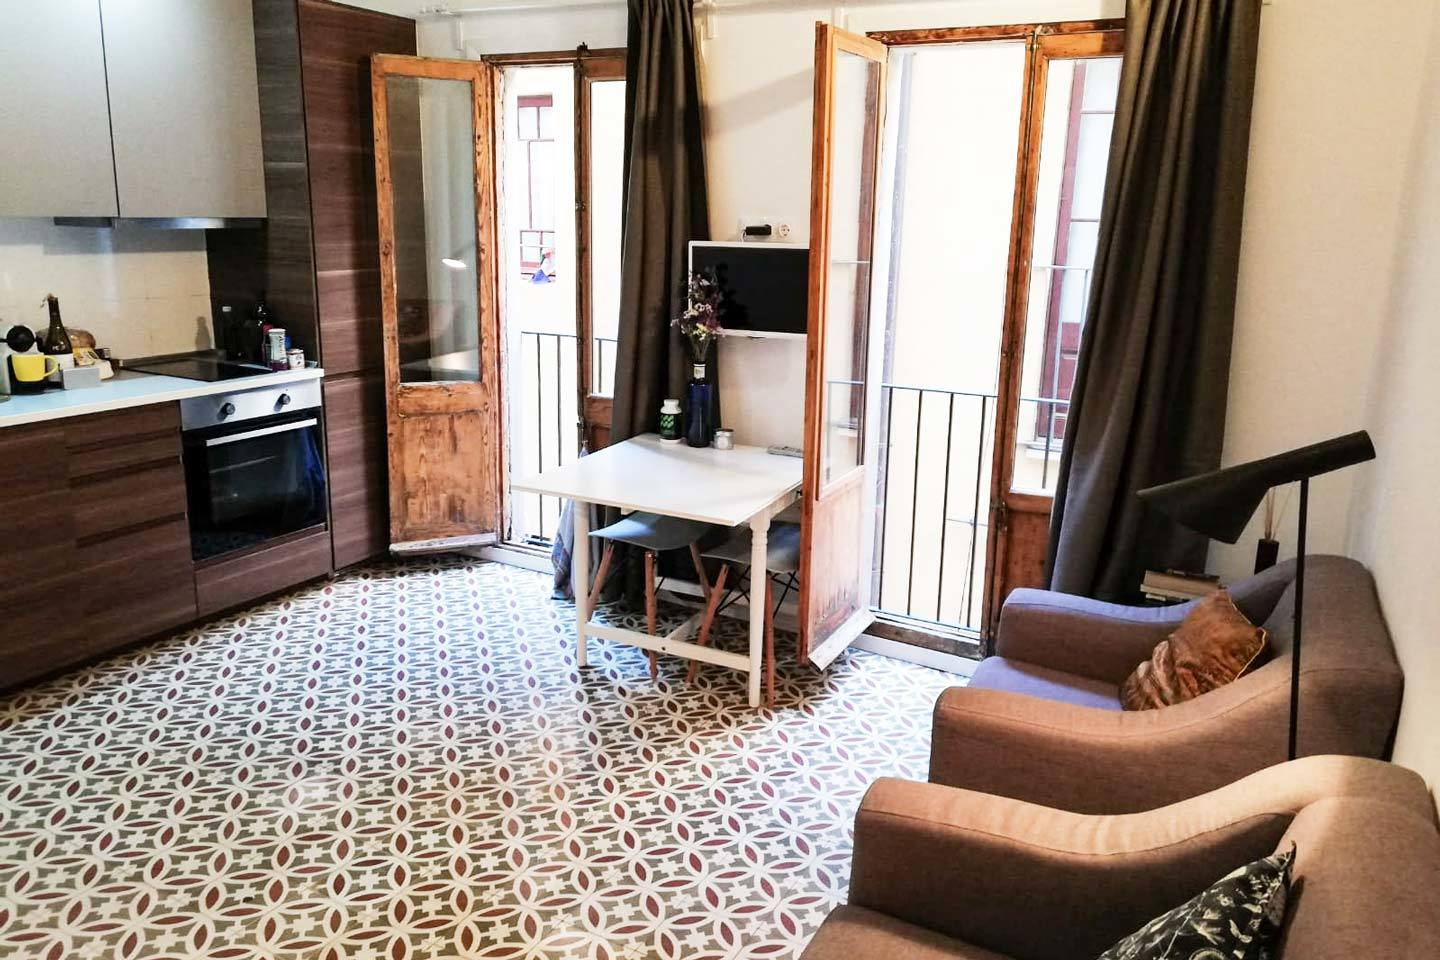 barcelona apartment airbnb